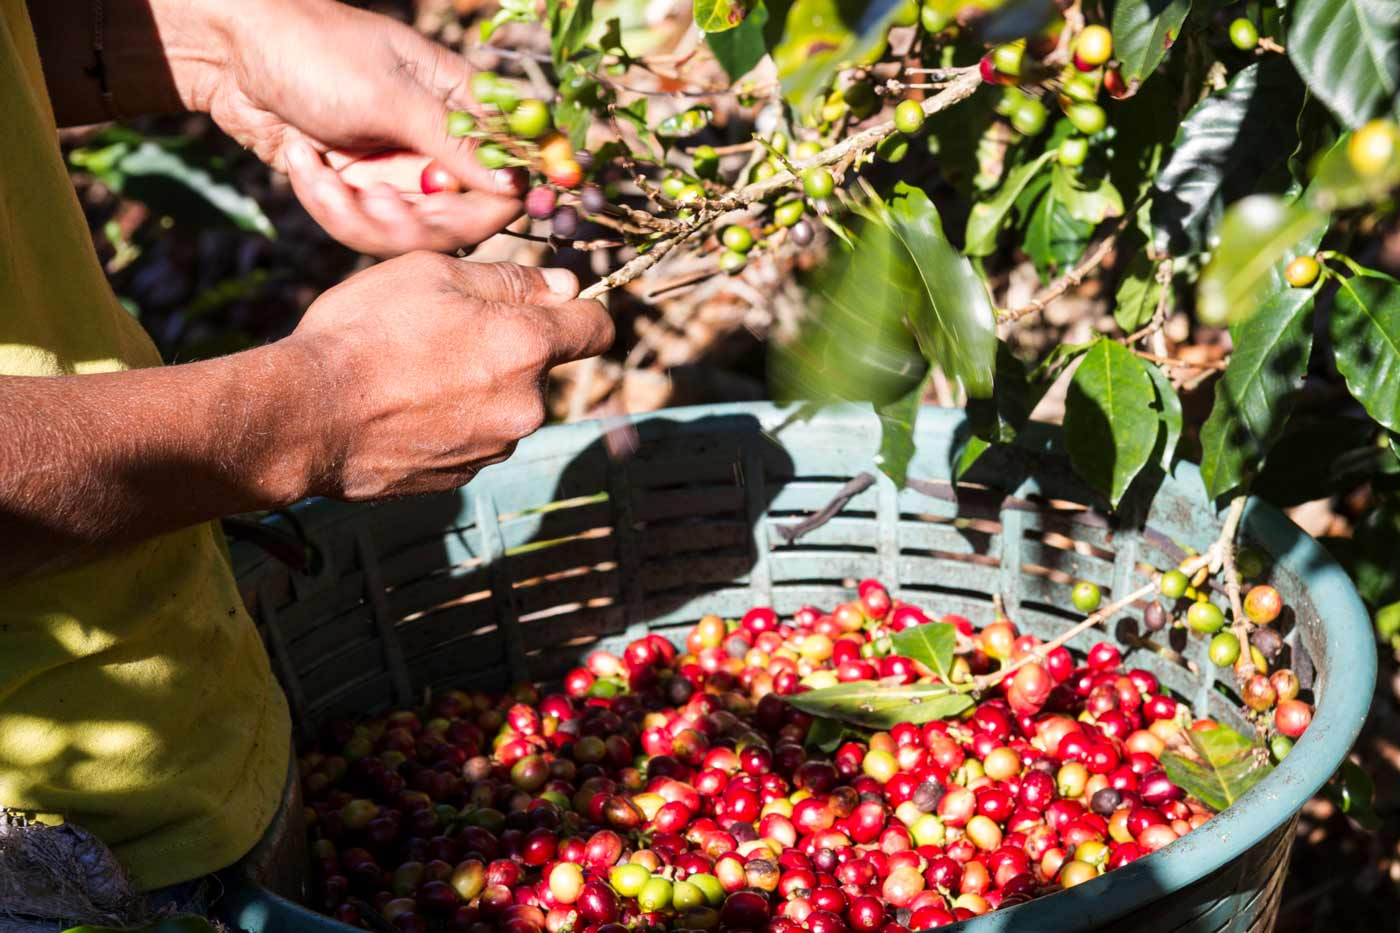 guide to coffee beans, coffee cherries